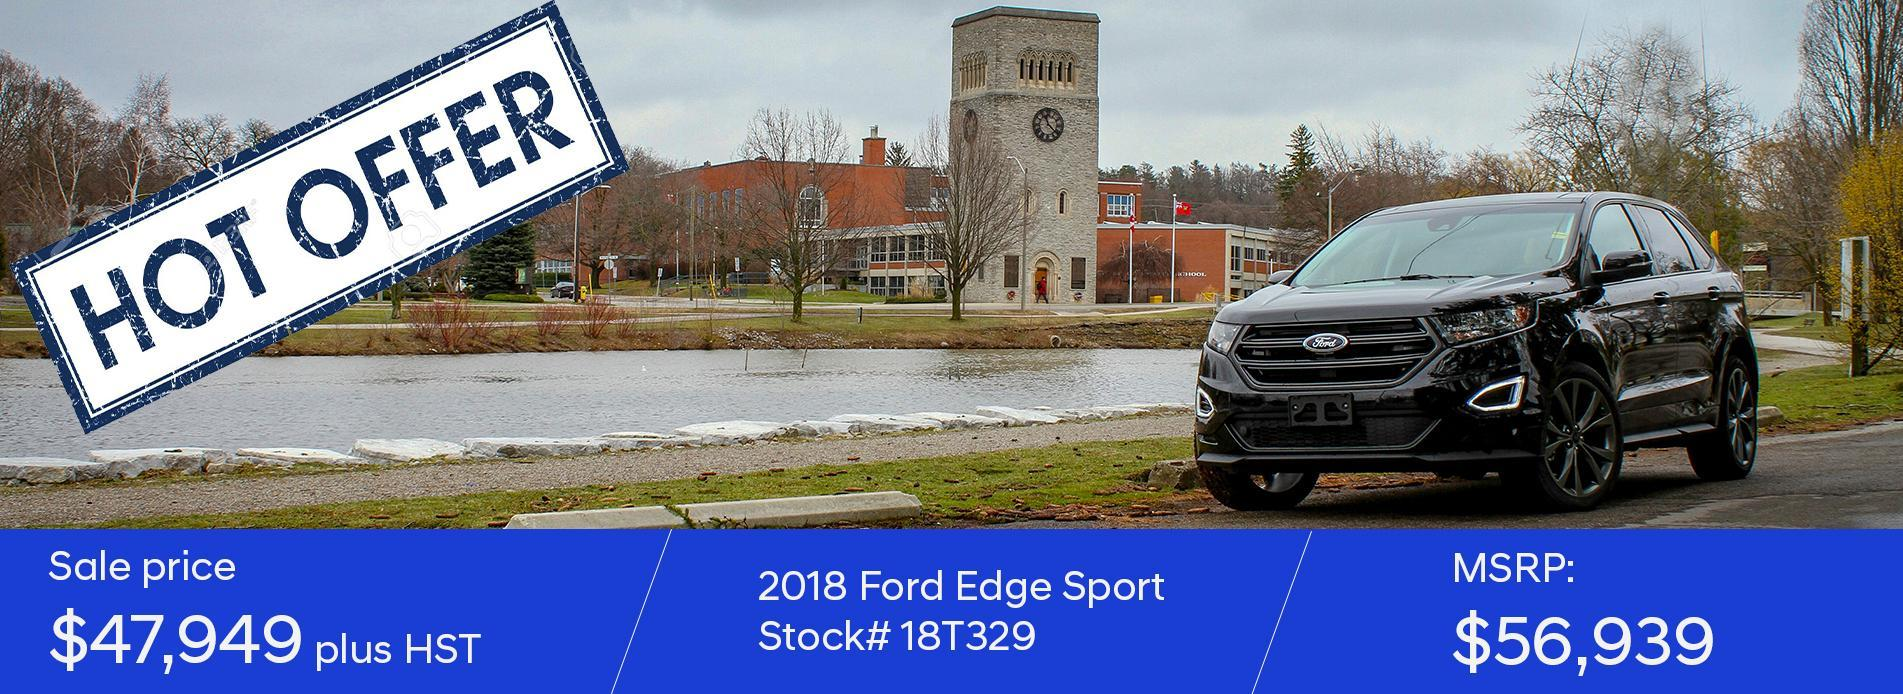 2018 Ford Edge - stock#18T329